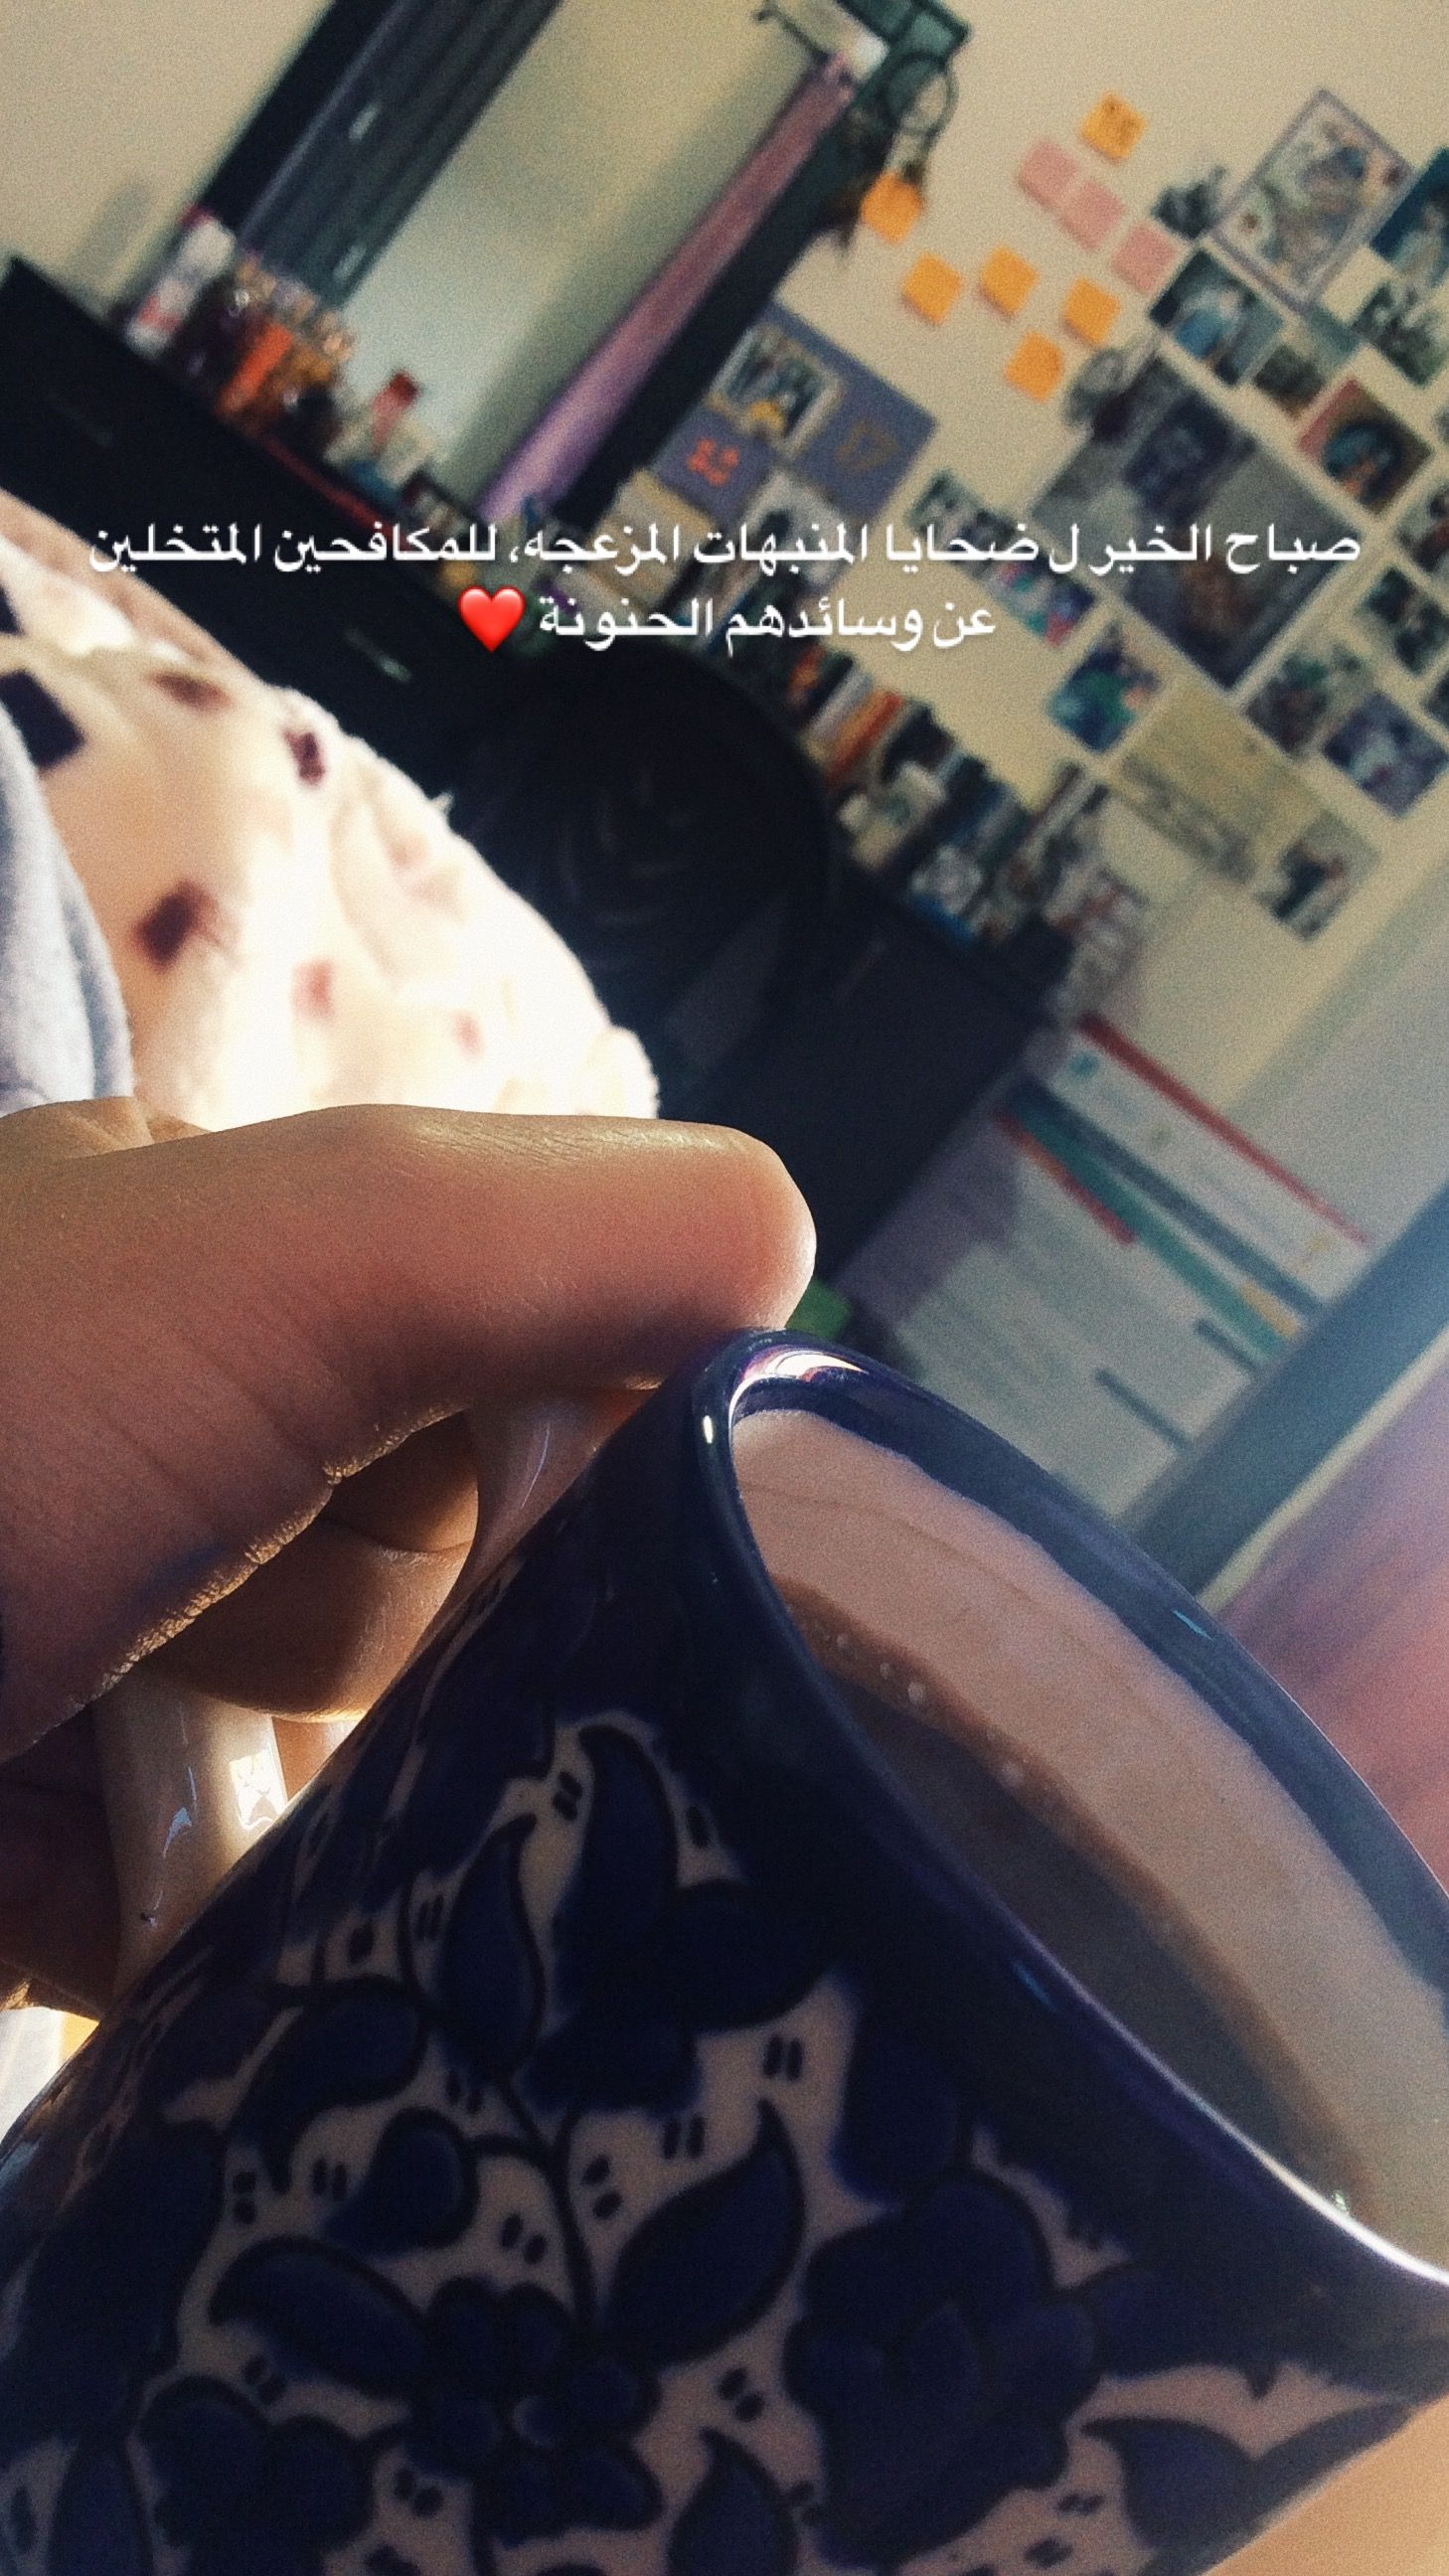 Pin By Rand Rimawi On ح ب Study Motivation Quotes Arabic Quotes Cool Girl Pictures